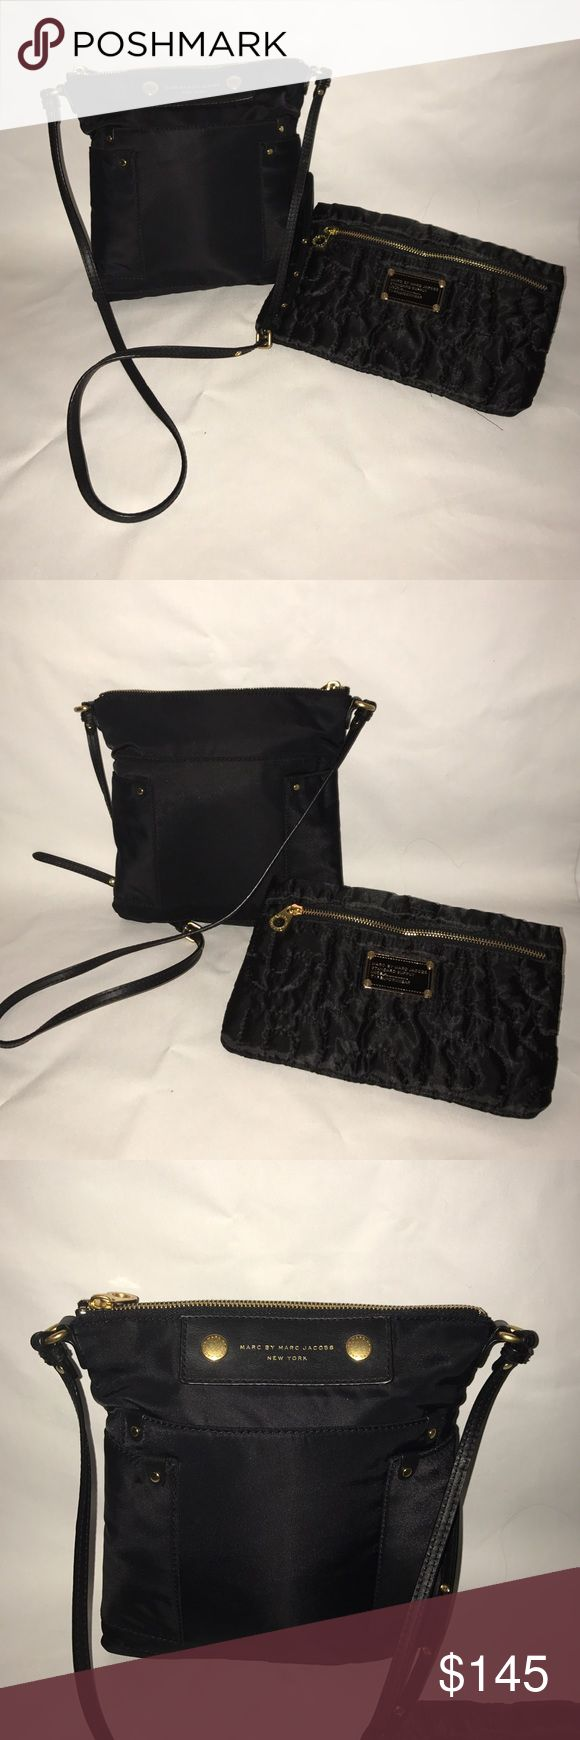 NEW Marc Jacobs Pretty Sia Crossbody with BONUS 😊❣ I sell on multiple sites...If you see something you like, get it before it's gone ❣😊  Both are BRAND NEW.  🔹 The Sia is 💯% Authentic 🔹  The pouch is a bonus. It was my daughter's - might be authentic but I didn't buy it. Therefore, I won't guarantee it's authenticity. Since it's cute & matches the bag, I added it.  🔹 The Sia is Authentic 🔹  💕 I send PREMIUM skin products with every item!  💕 All of my items are carefully wrapped in…